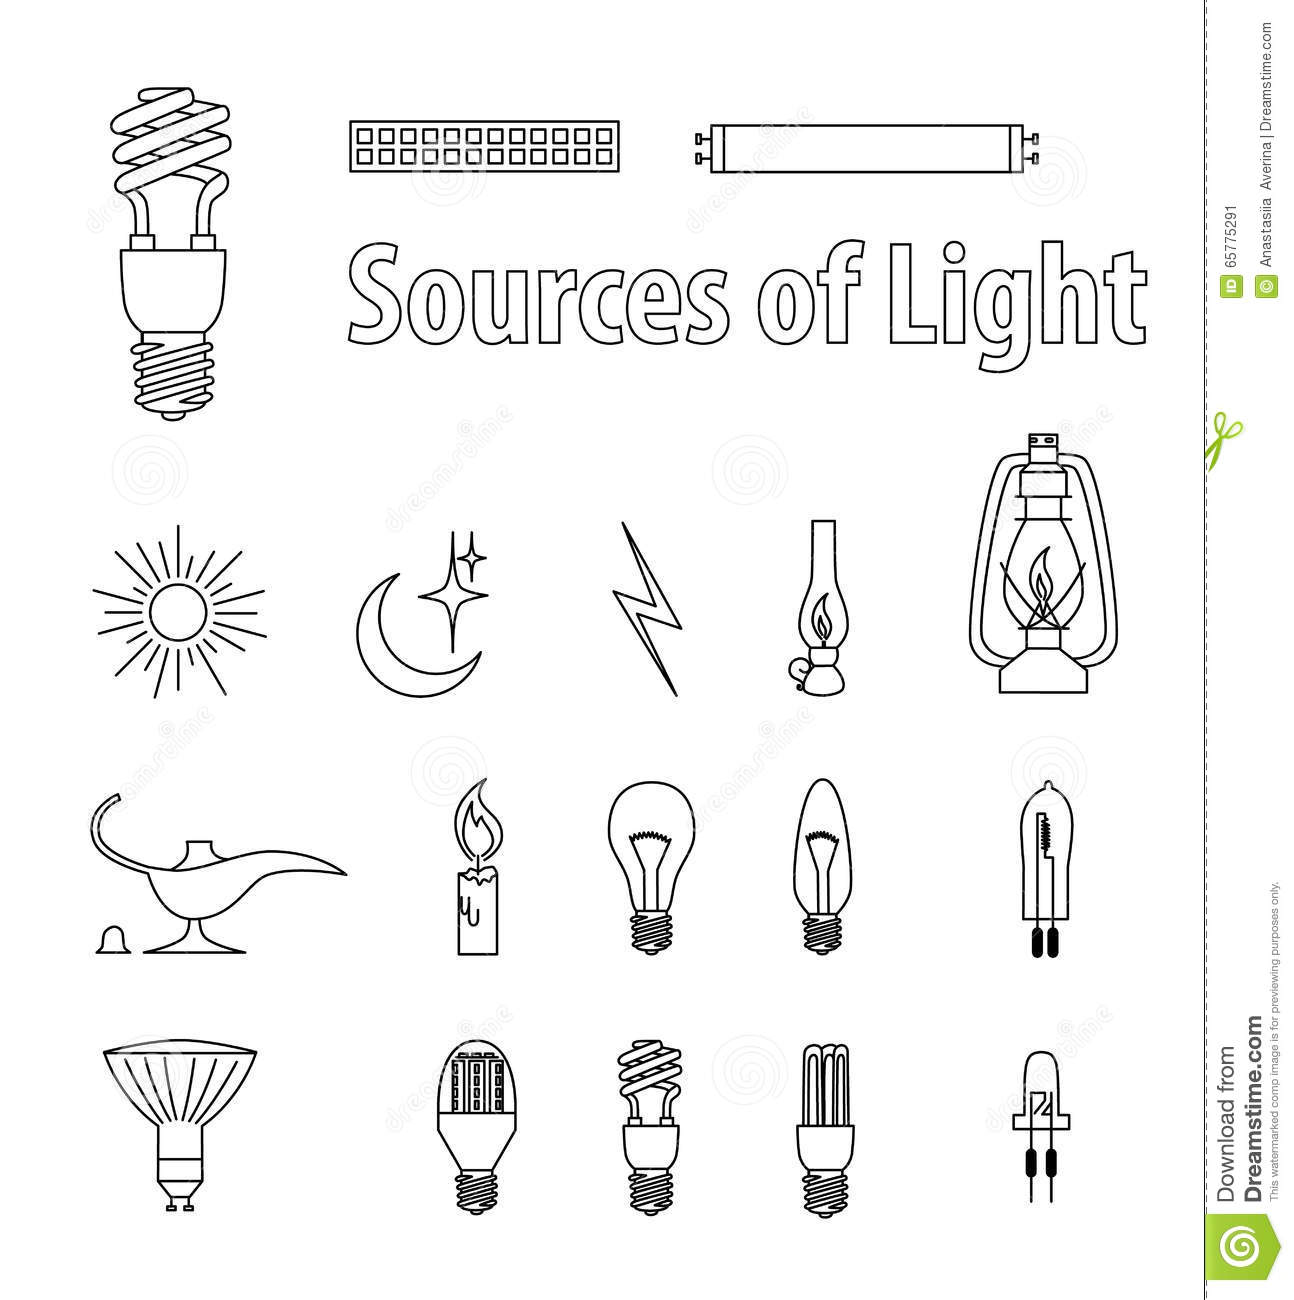 Vintage Light Bulbs Vector Illustration Source Of Light Stock Vector